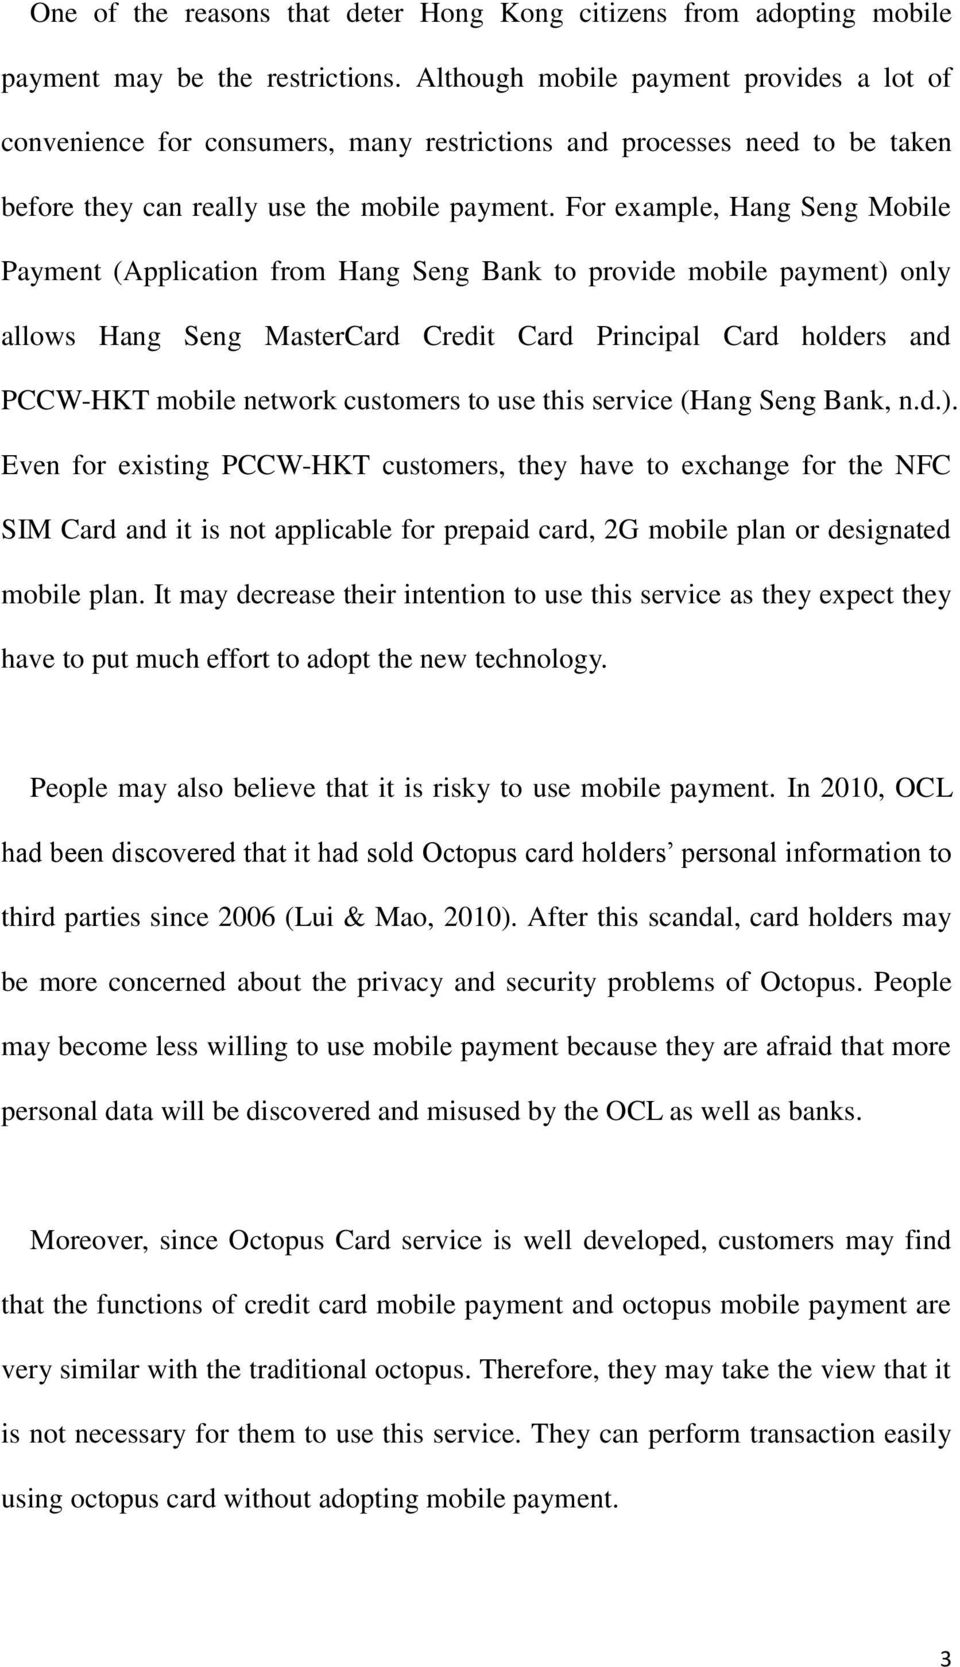 For example, Hang Seng Mobile Payment (Application from Hang Seng Bank to provide mobile payment) only allows Hang Seng MasterCard Credit Card Principal Card holders and PCCW-HKT mobile network